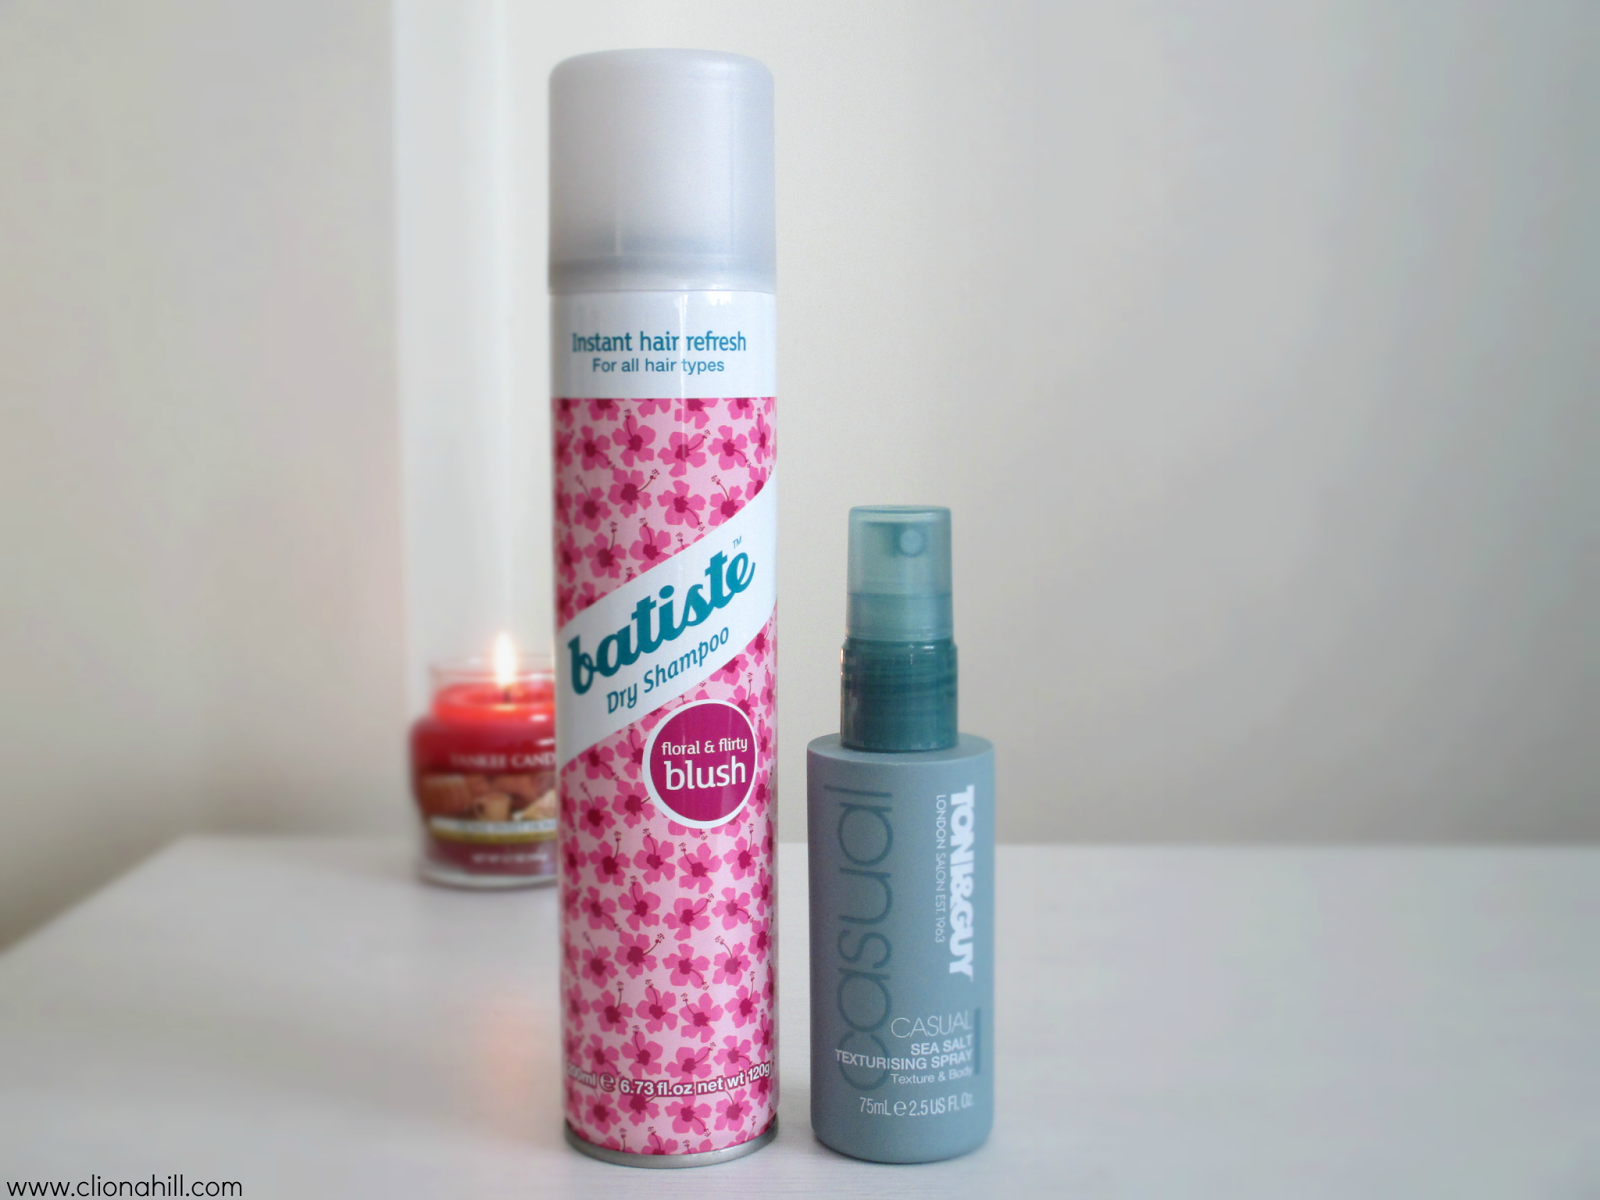 Batiste dry shampoo and Toni & Guy sea salt spray